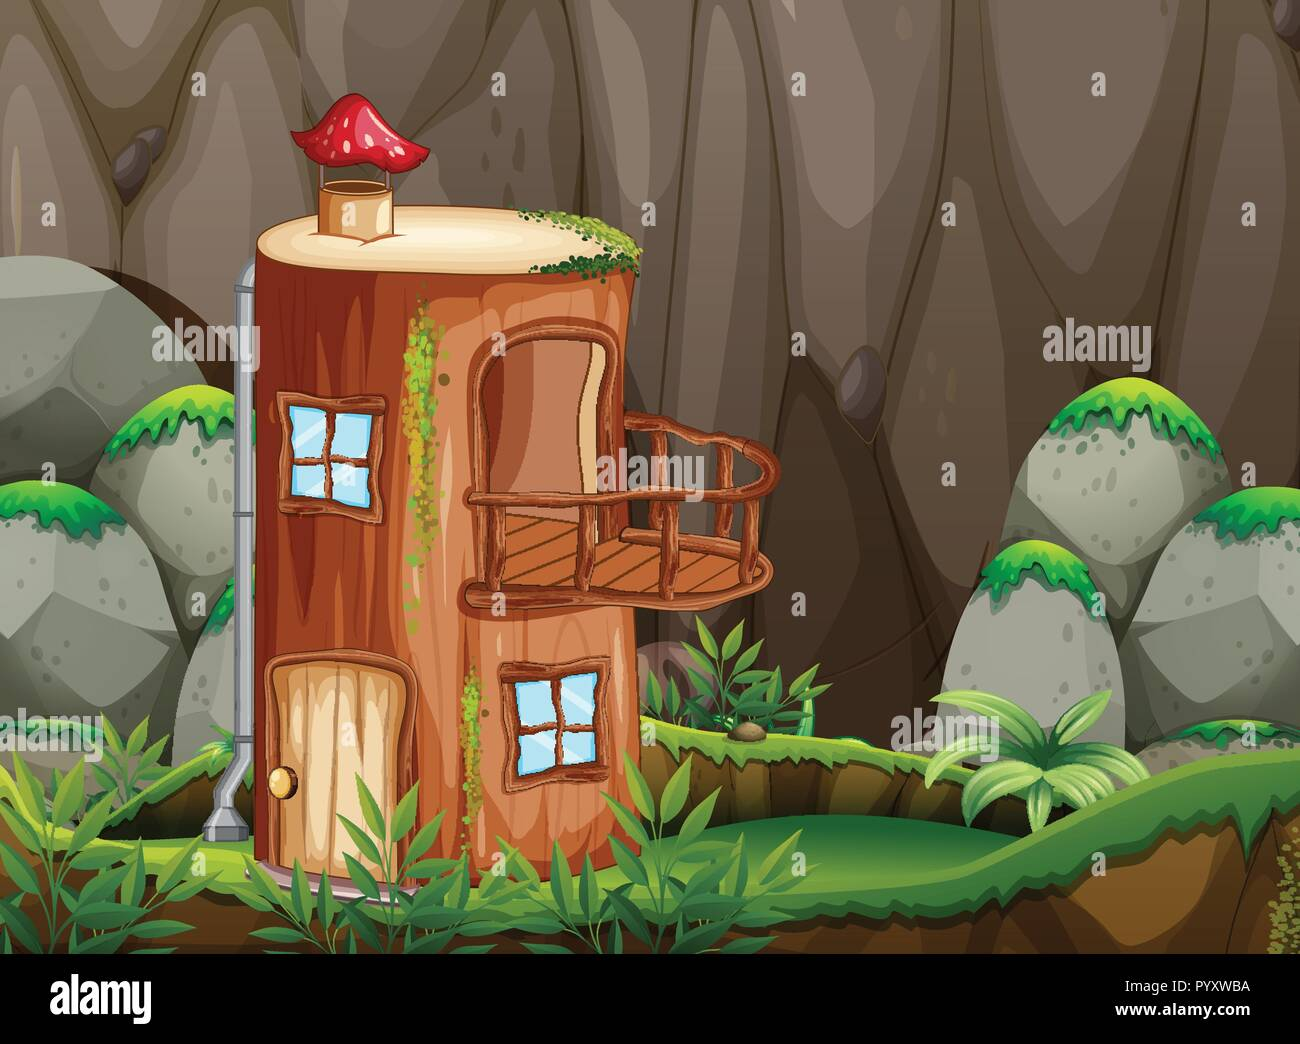 Log house in nature illustration - Stock Vector